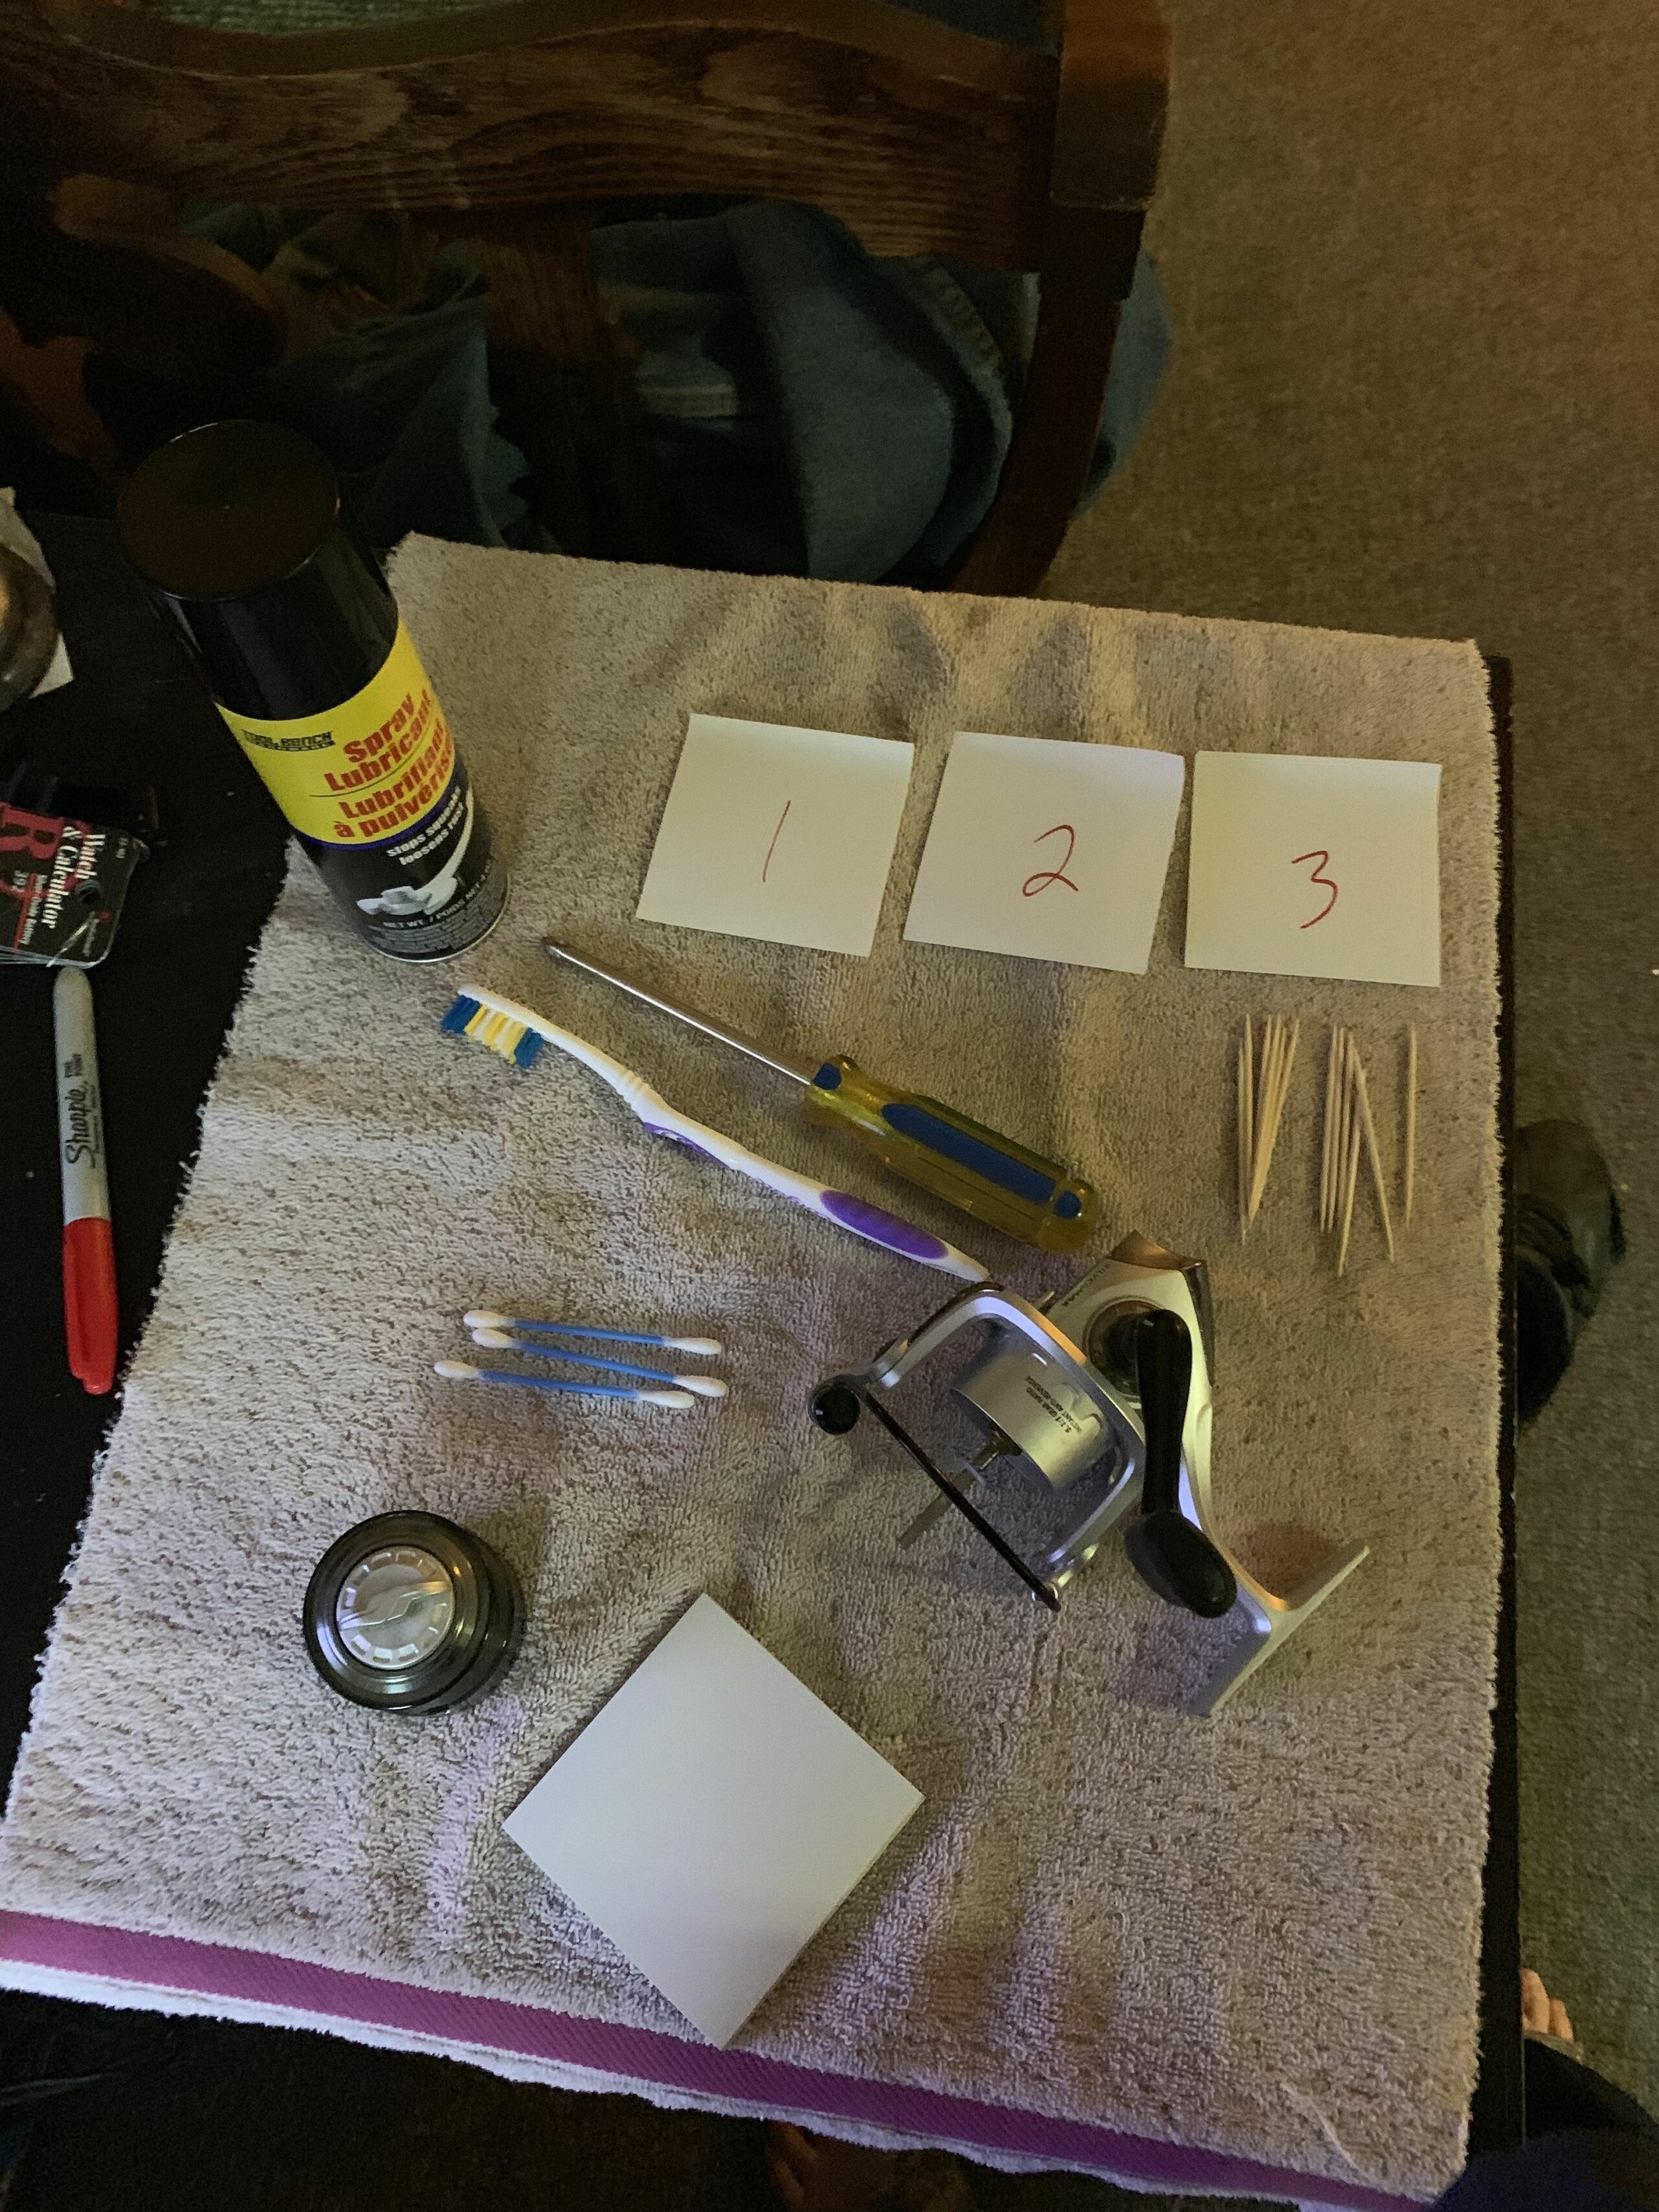 Items use for cleaning a spinning reel. Spinning fishing reel with spool detached. Toothbrush, phillips head screwdriver, toothpicks q-tips, 3 sticky notes 1,2,3 written on them, lubricant cleaner, towel.